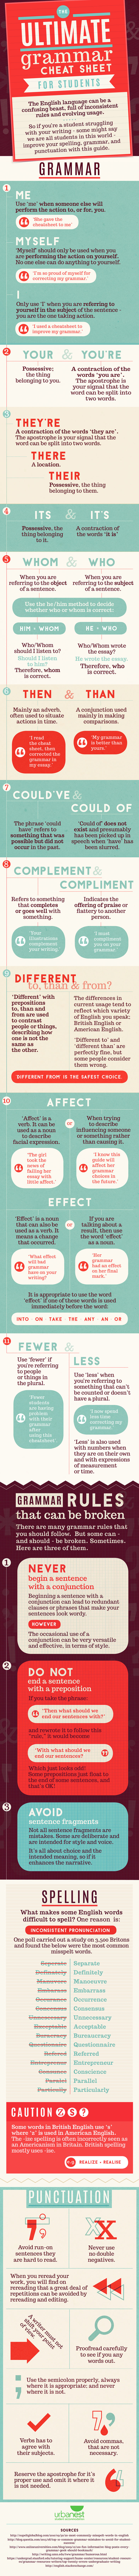 The Ultimate English Grammar Cheat Sheet